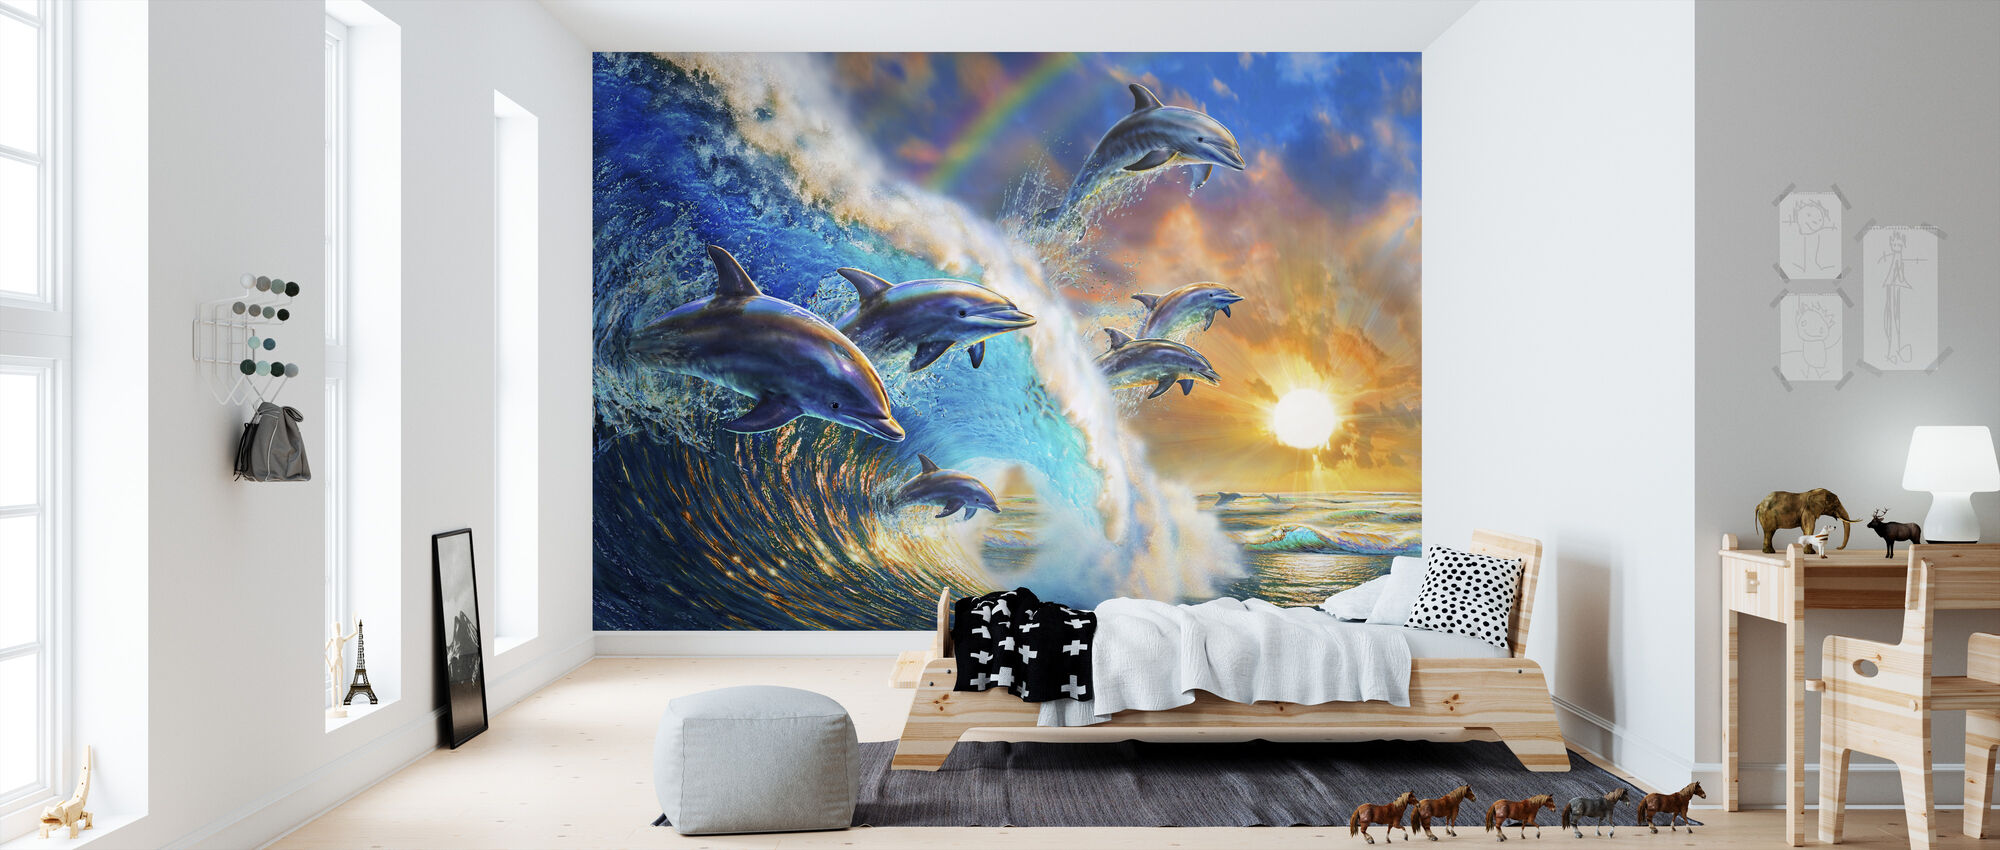 Dolphin Wave - Wallpaper - Kids Room